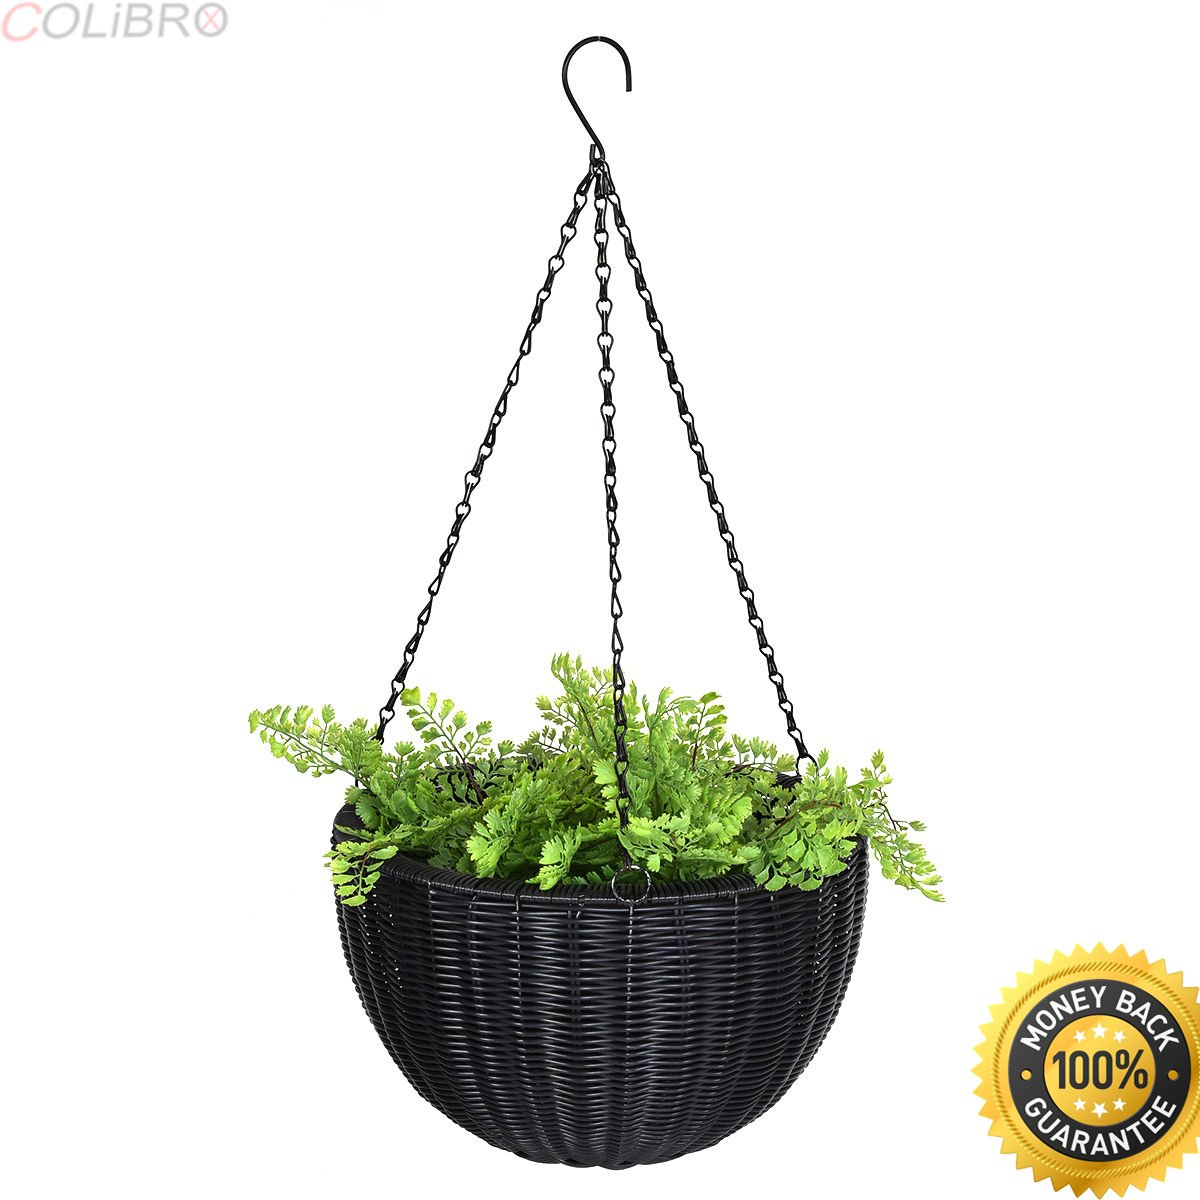 COLIBROX--4 PCS 13.8'' Round PE Rattan Garden Plant Hanging Planters Decor Pots New Outdoor Garden Fir Wood Raised Bed Planter Stand Flower Yard Landscape Box